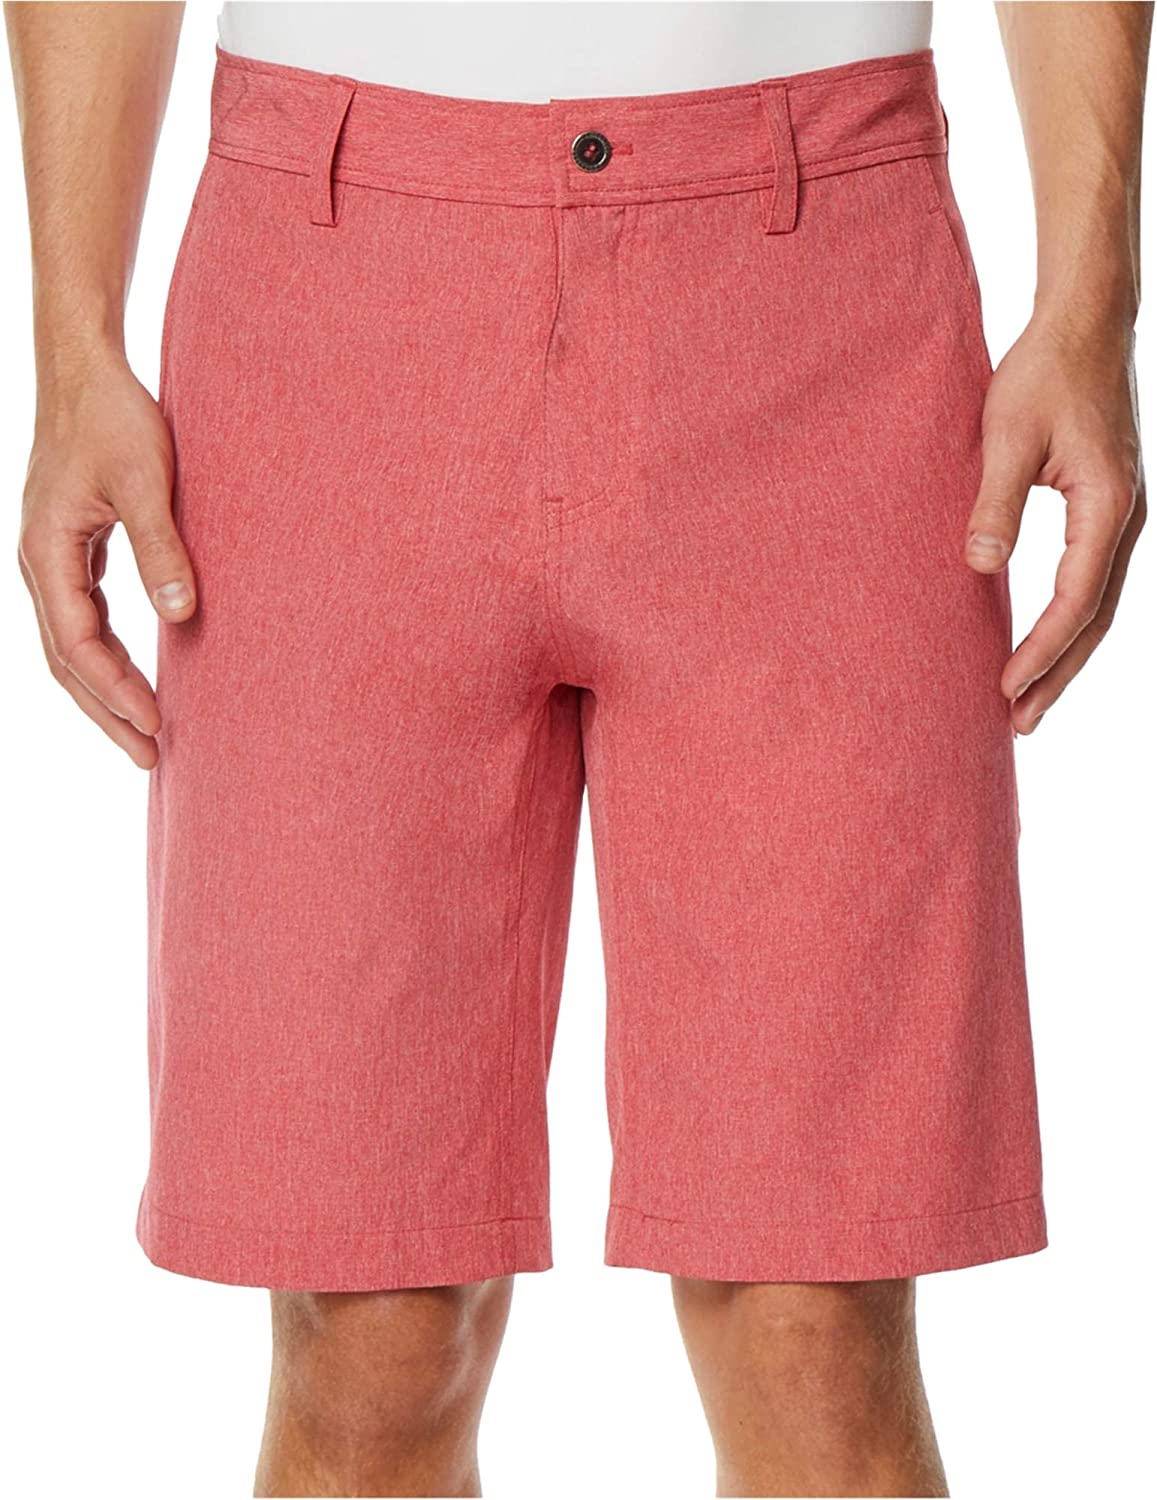 32 DEGREES Mens Heathered Casual Chino Shorts Red 33